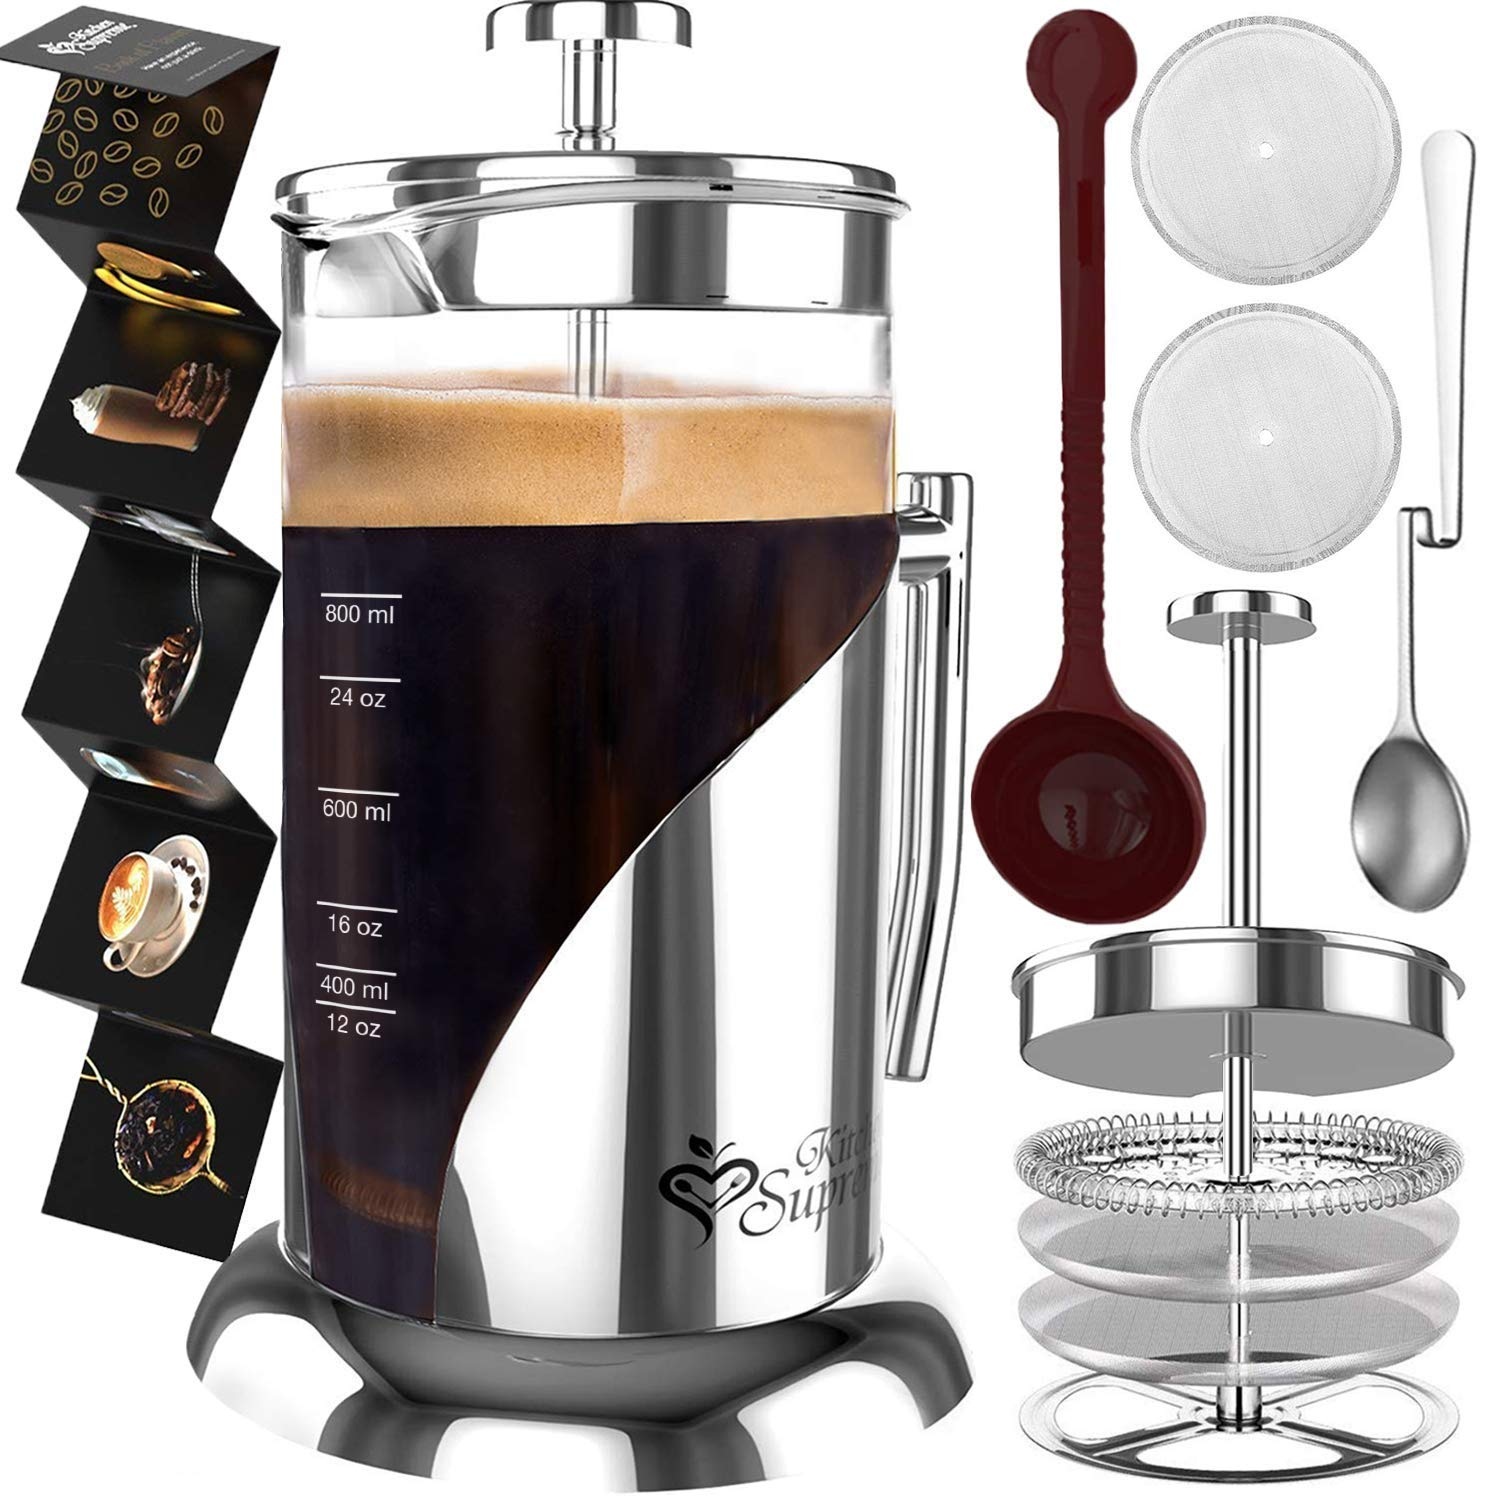 Amazon Com French Press Coffee Maker Best Presses Makers 34 Oz 8 Cup The Only Encapsulated Lid Stainless Steel 304 Not Plastic 4 Level Filtration System Double German Glass Home Kitchen